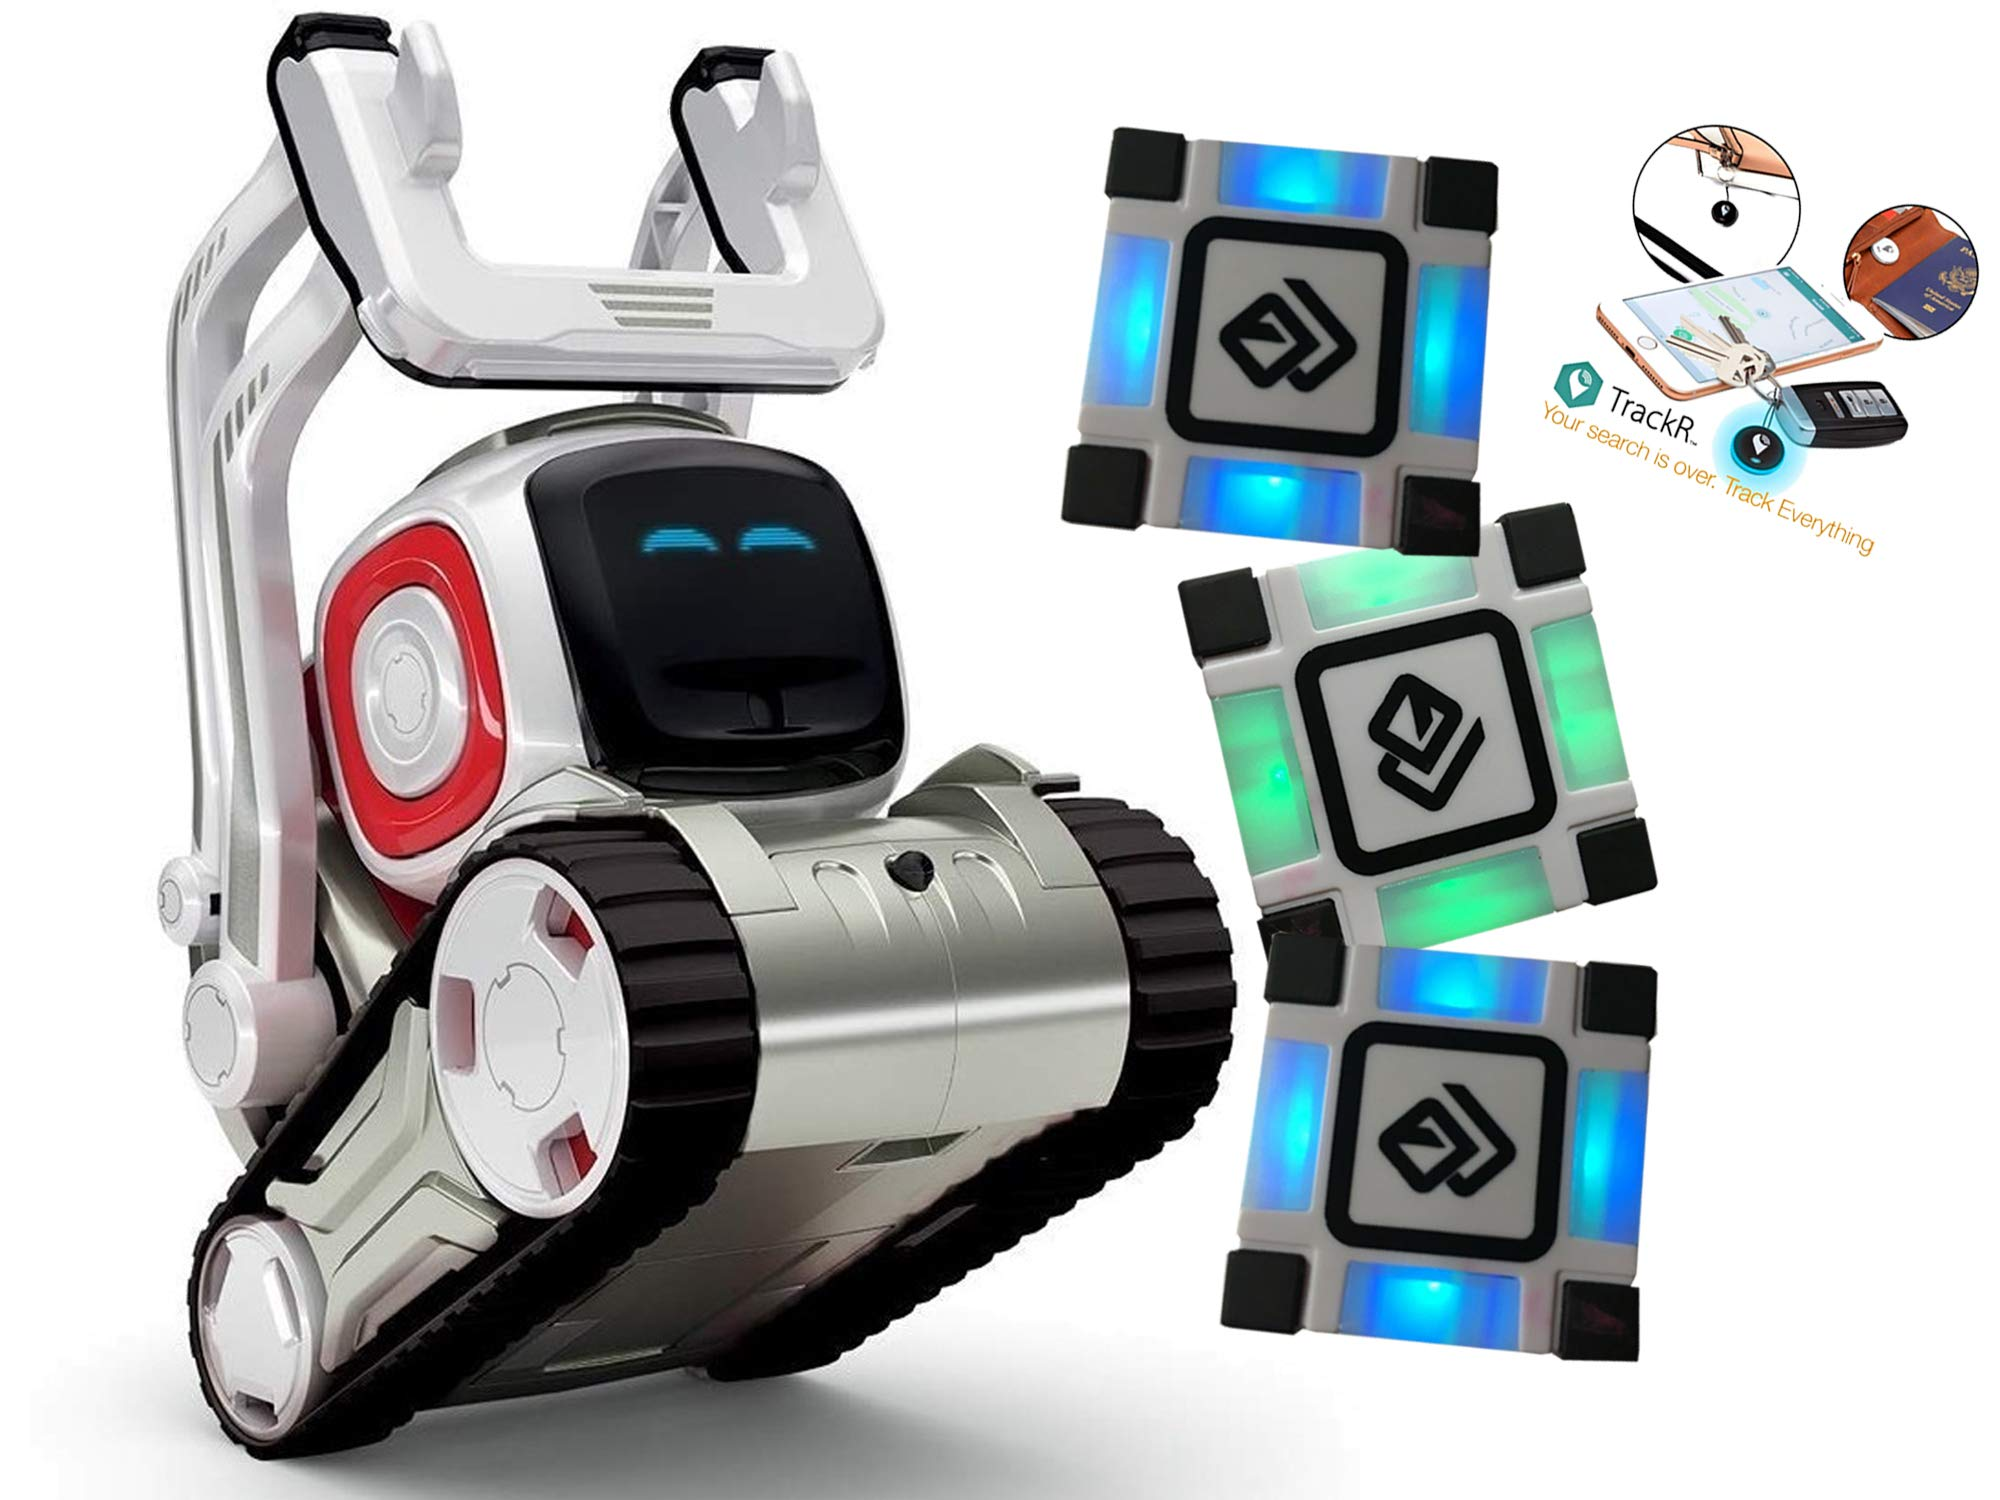 Anki Cozmo A Fun, Educational Toy Robot for Kids with 3 Cubes & Dock Item Tracker for Cozmo Kit - for Android & iOS Apple (Renewed) - wiihuu